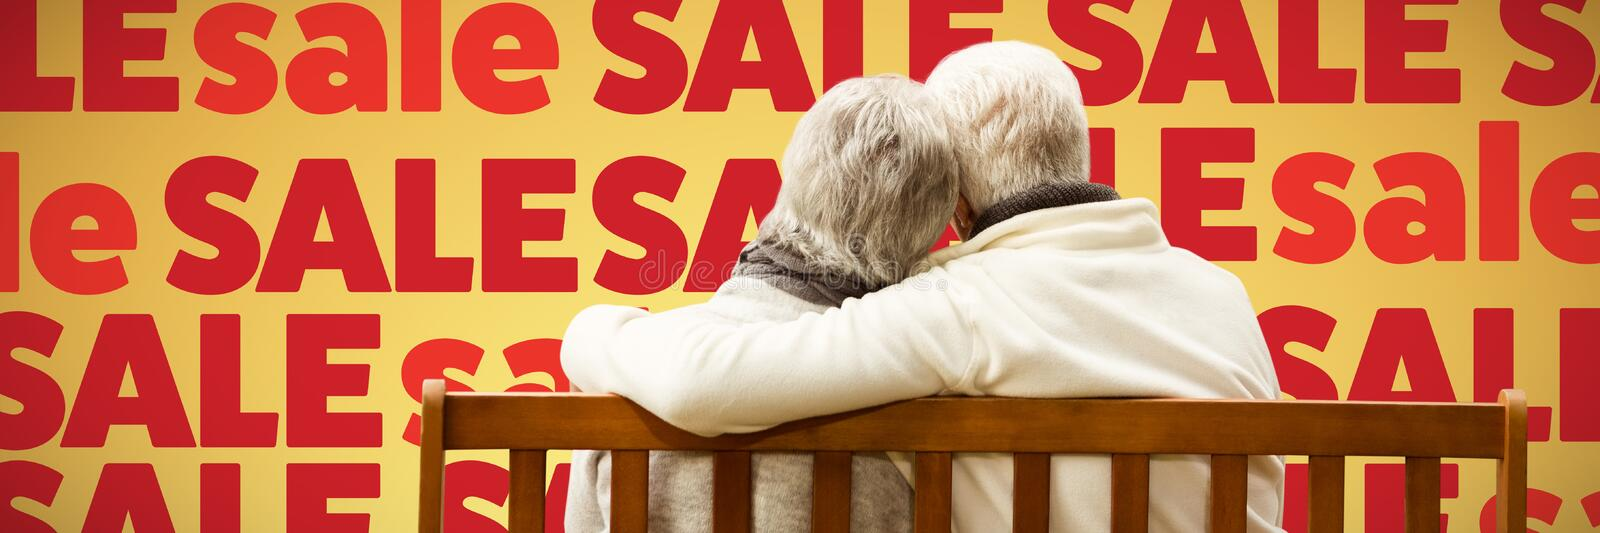 Composite image of senior couple embracing on a bench royalty free stock photo